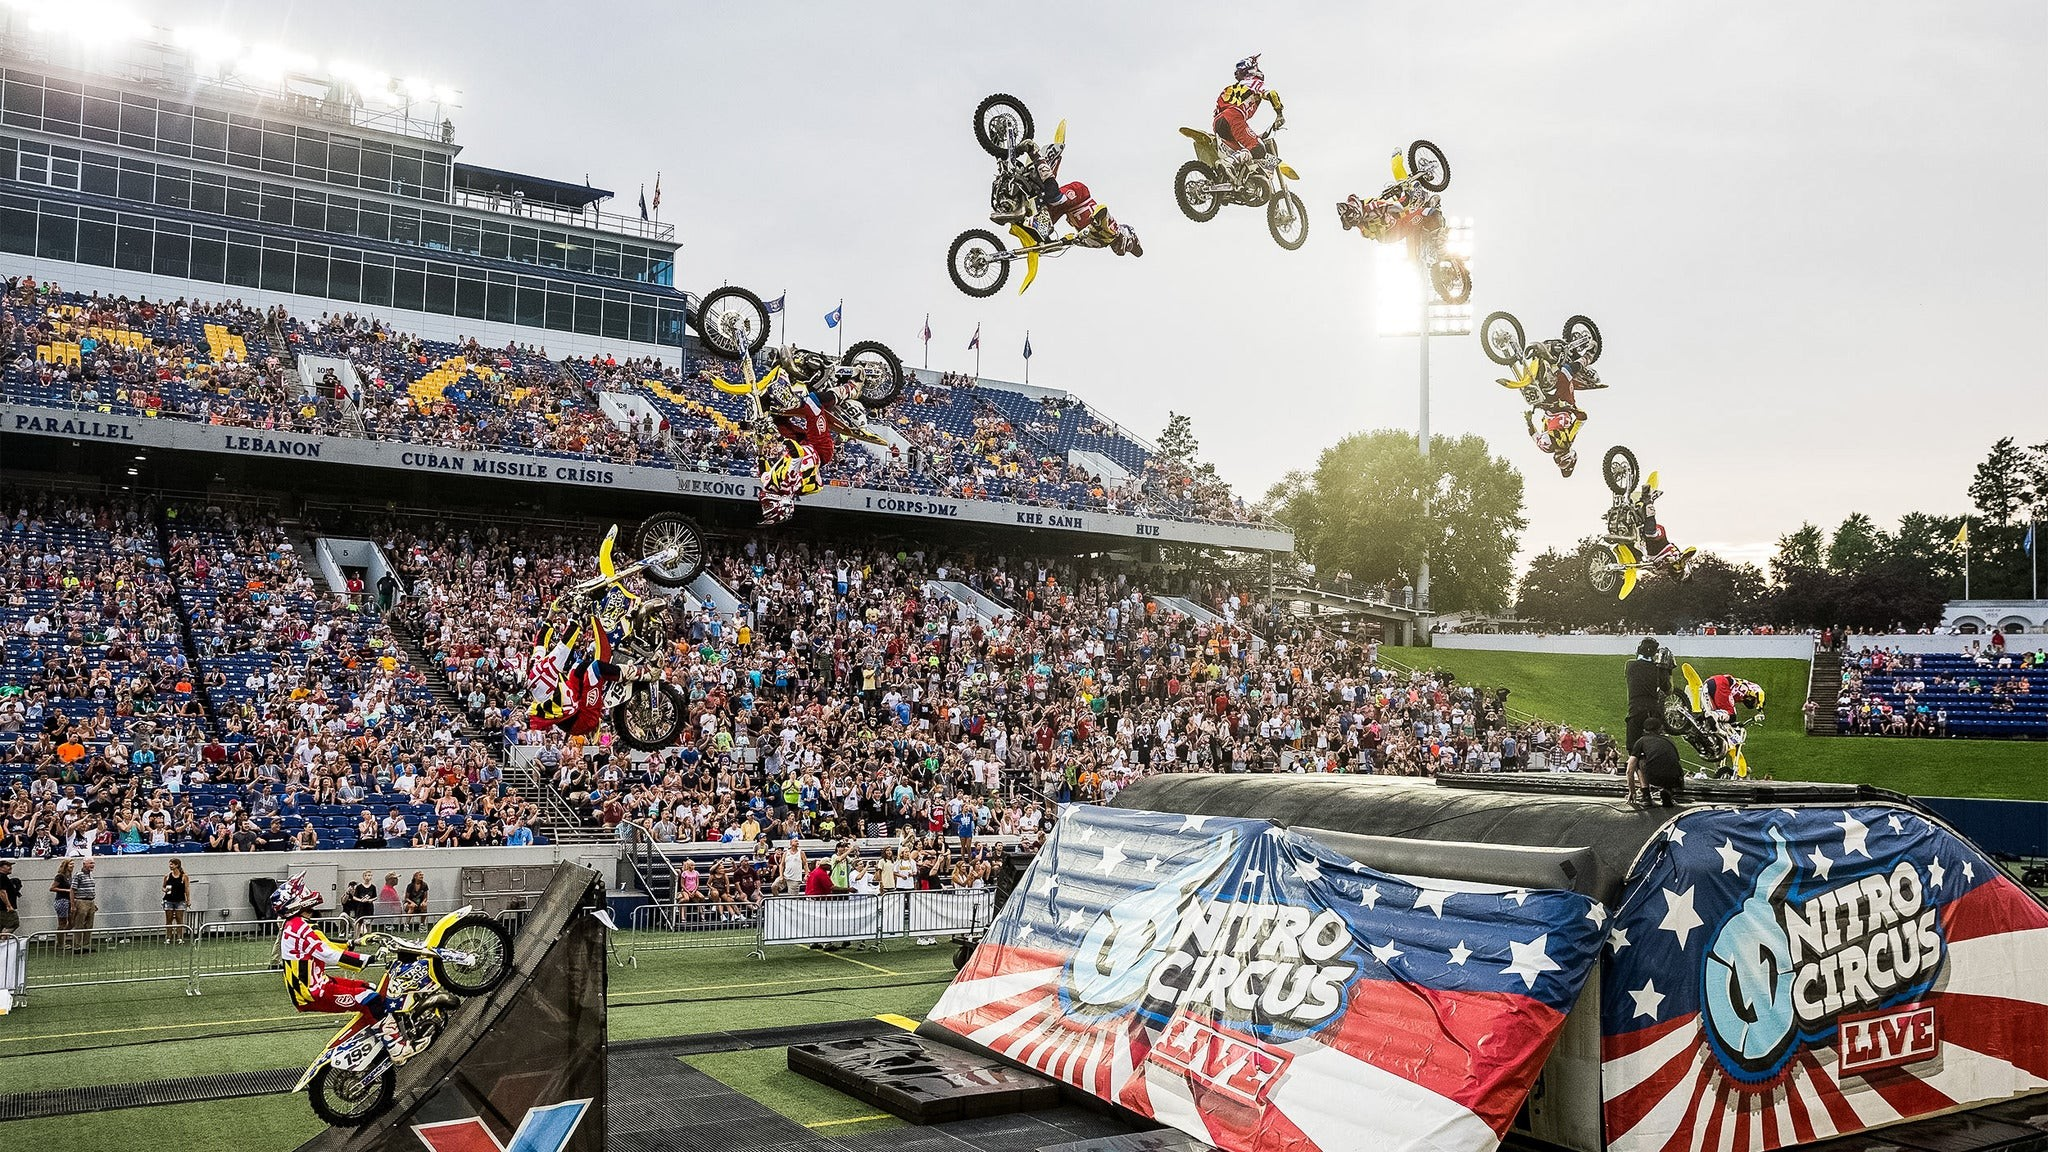 Evergreen State Fair 2020.Nitro Circus Live You Got This Tour At Evergreen State